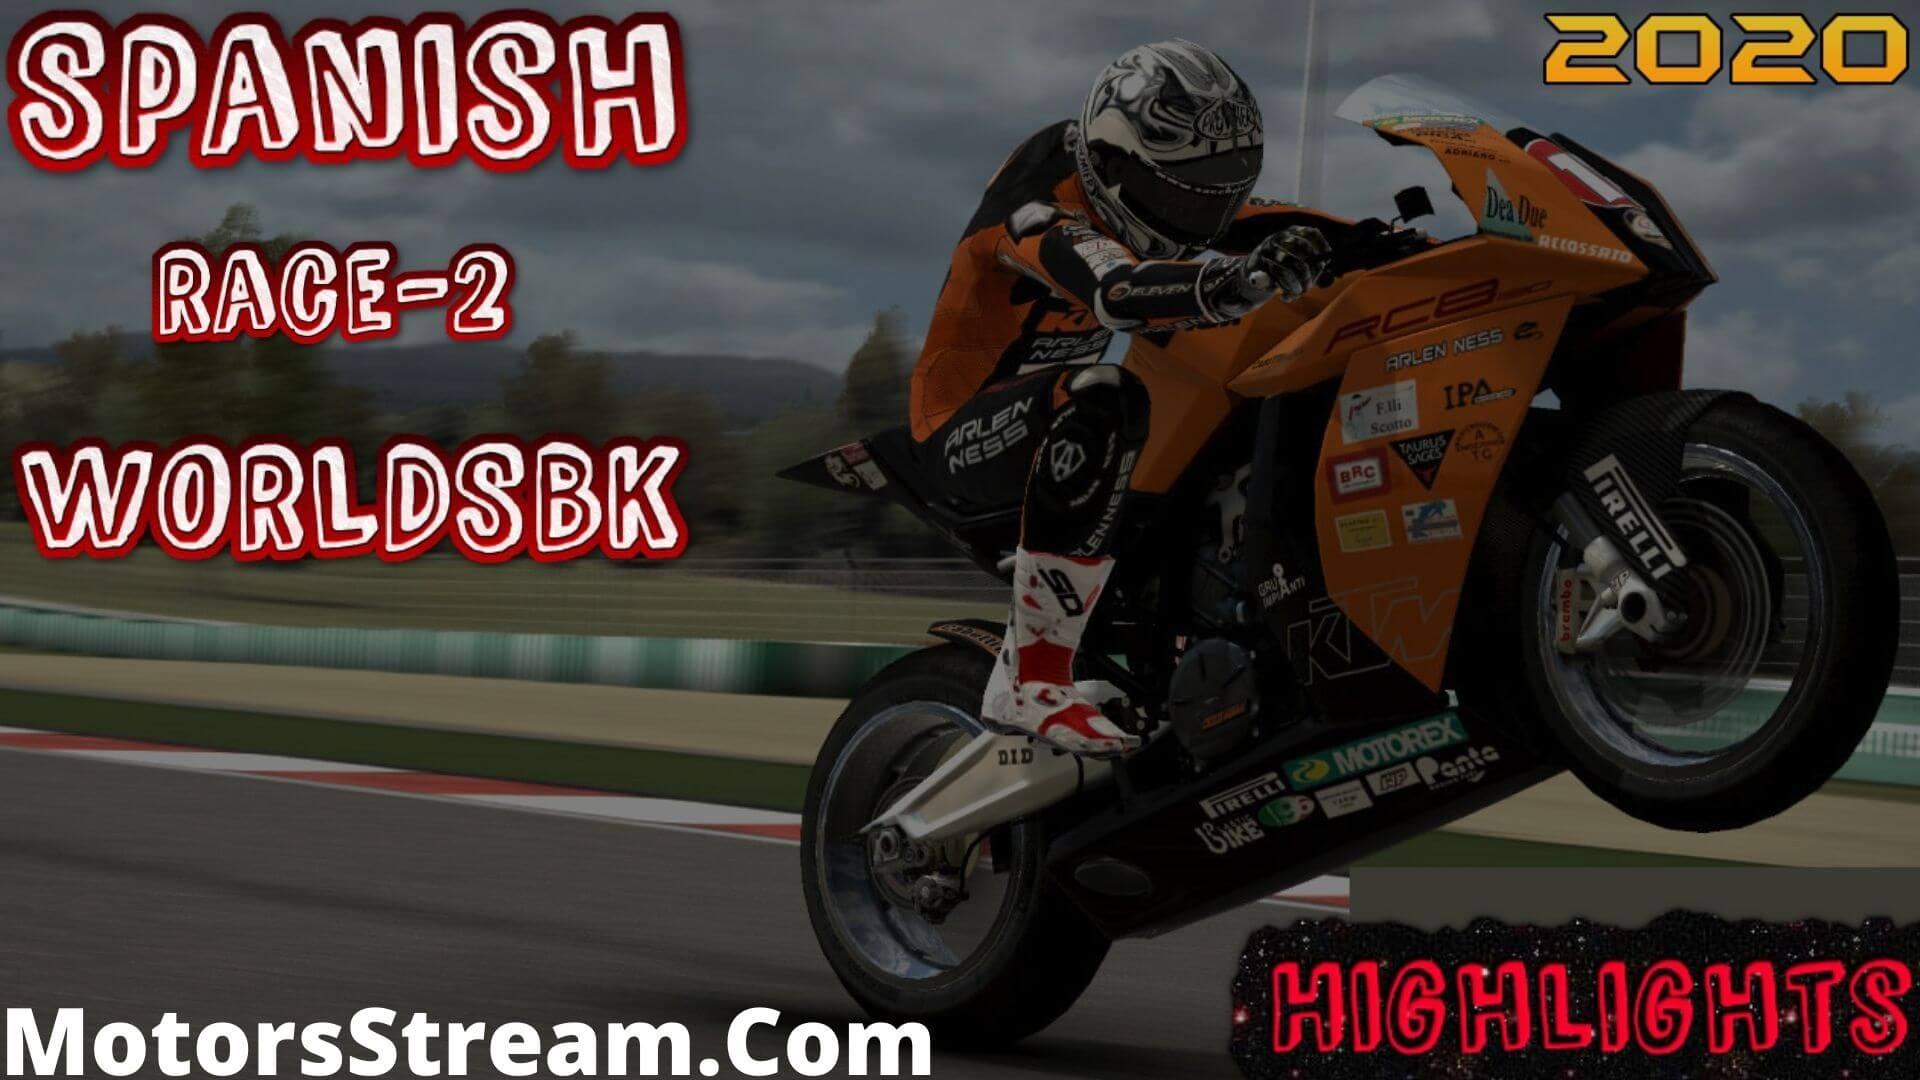 Spanish Race 2 Highlights 2020 WORLDSBK